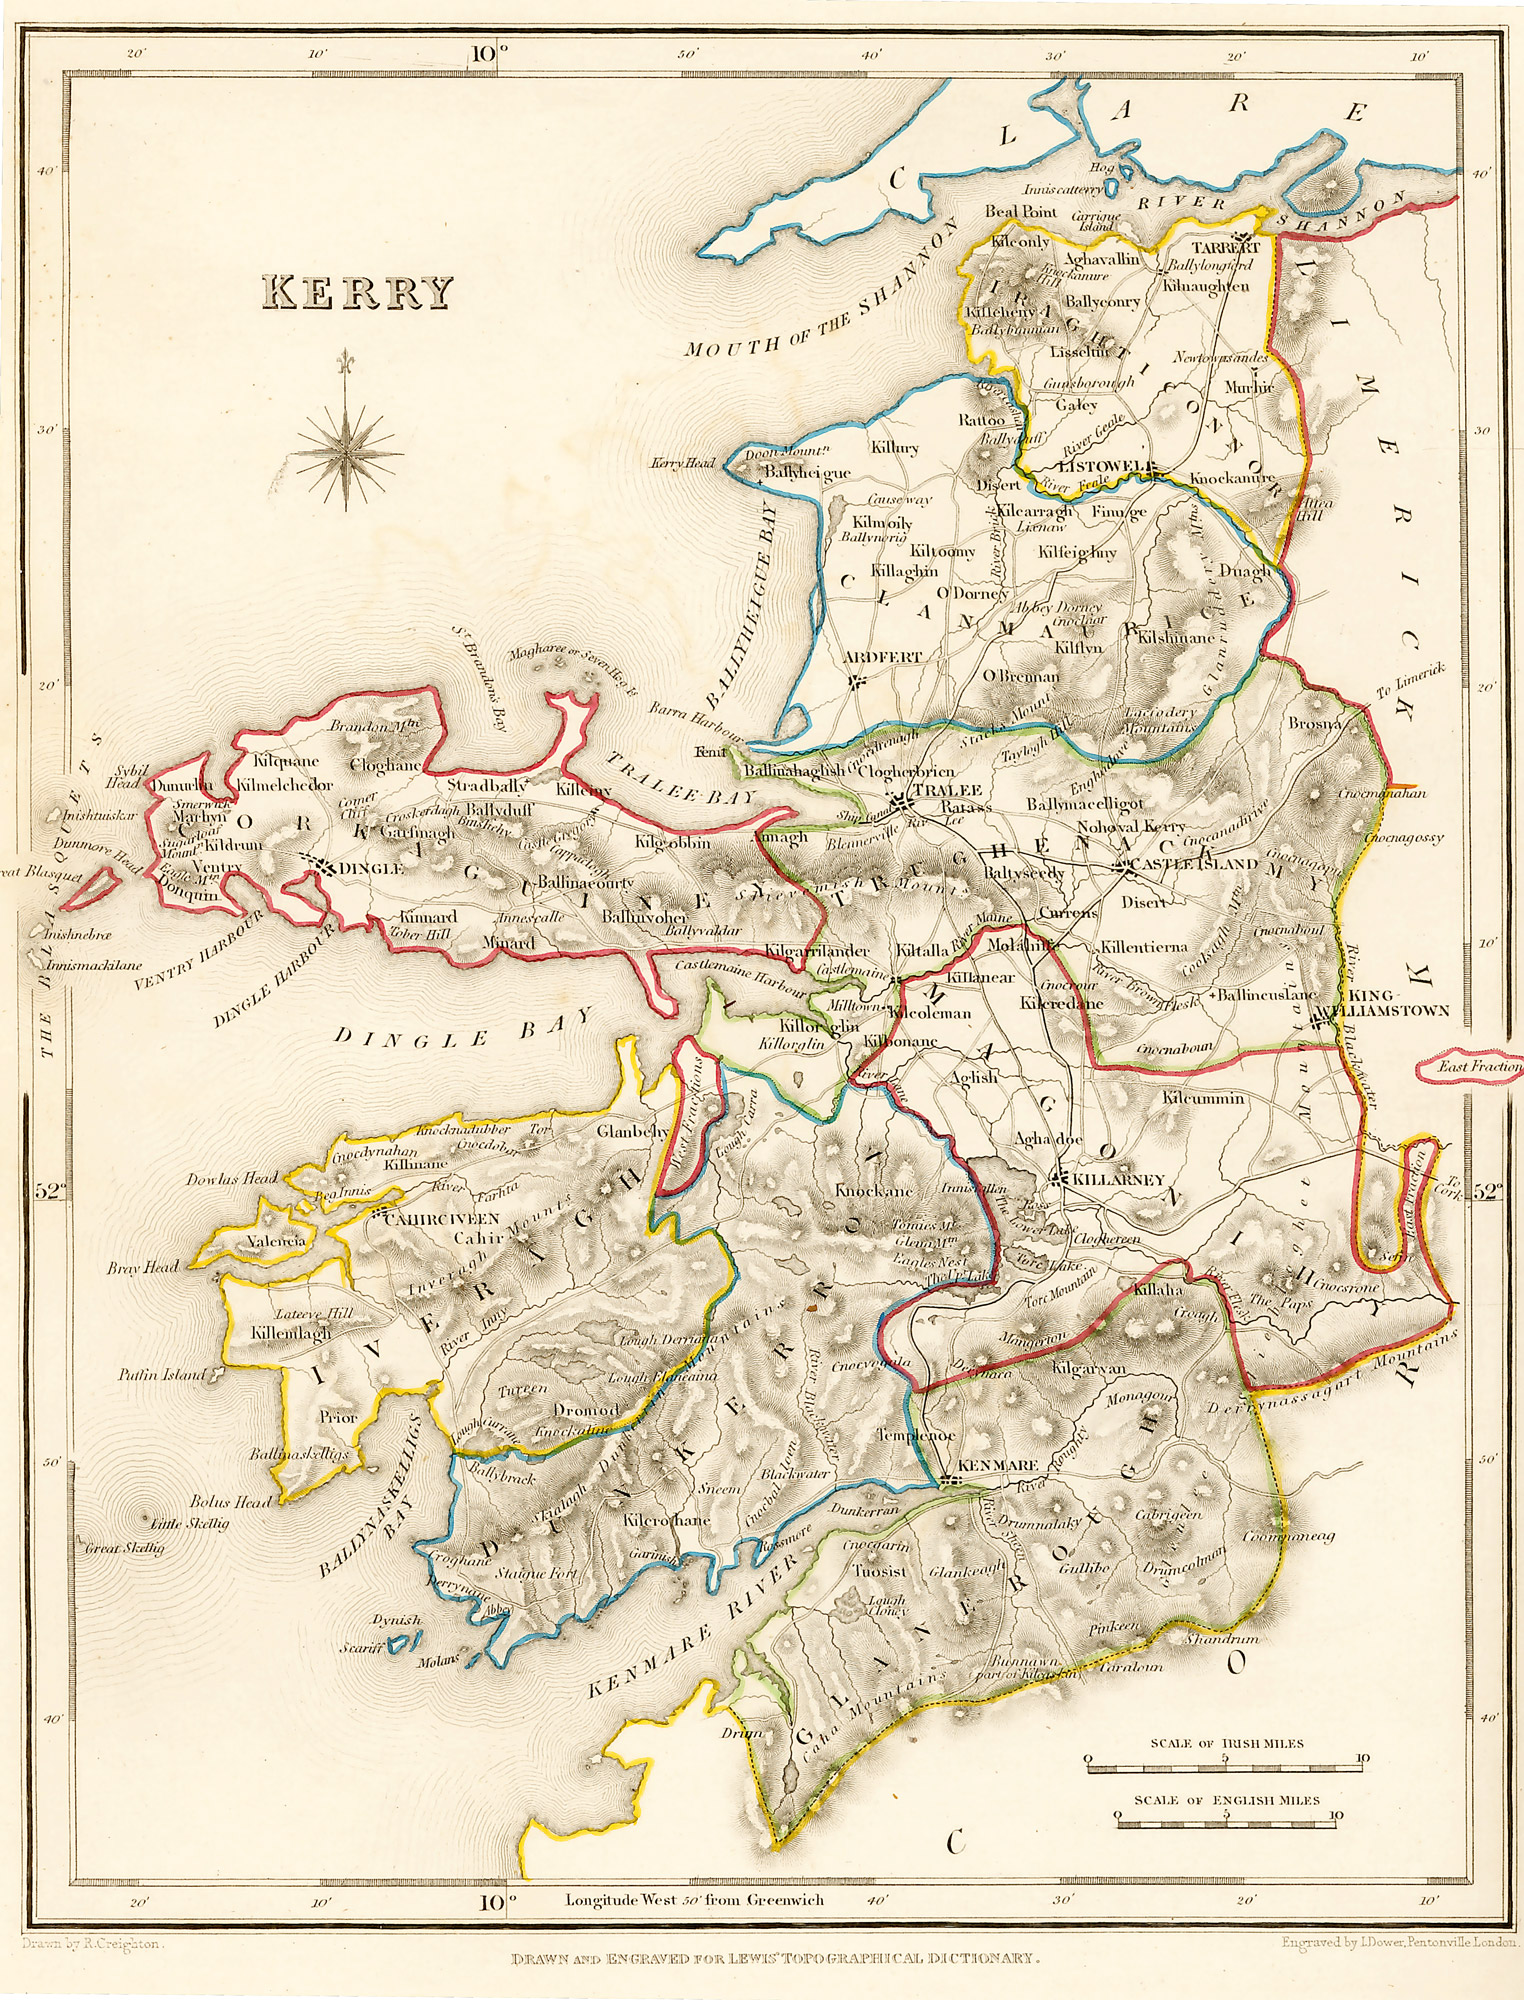 Map Of Ireland With County Borders.Historic Maps All Island Ireland Map Collections At Ucd And On